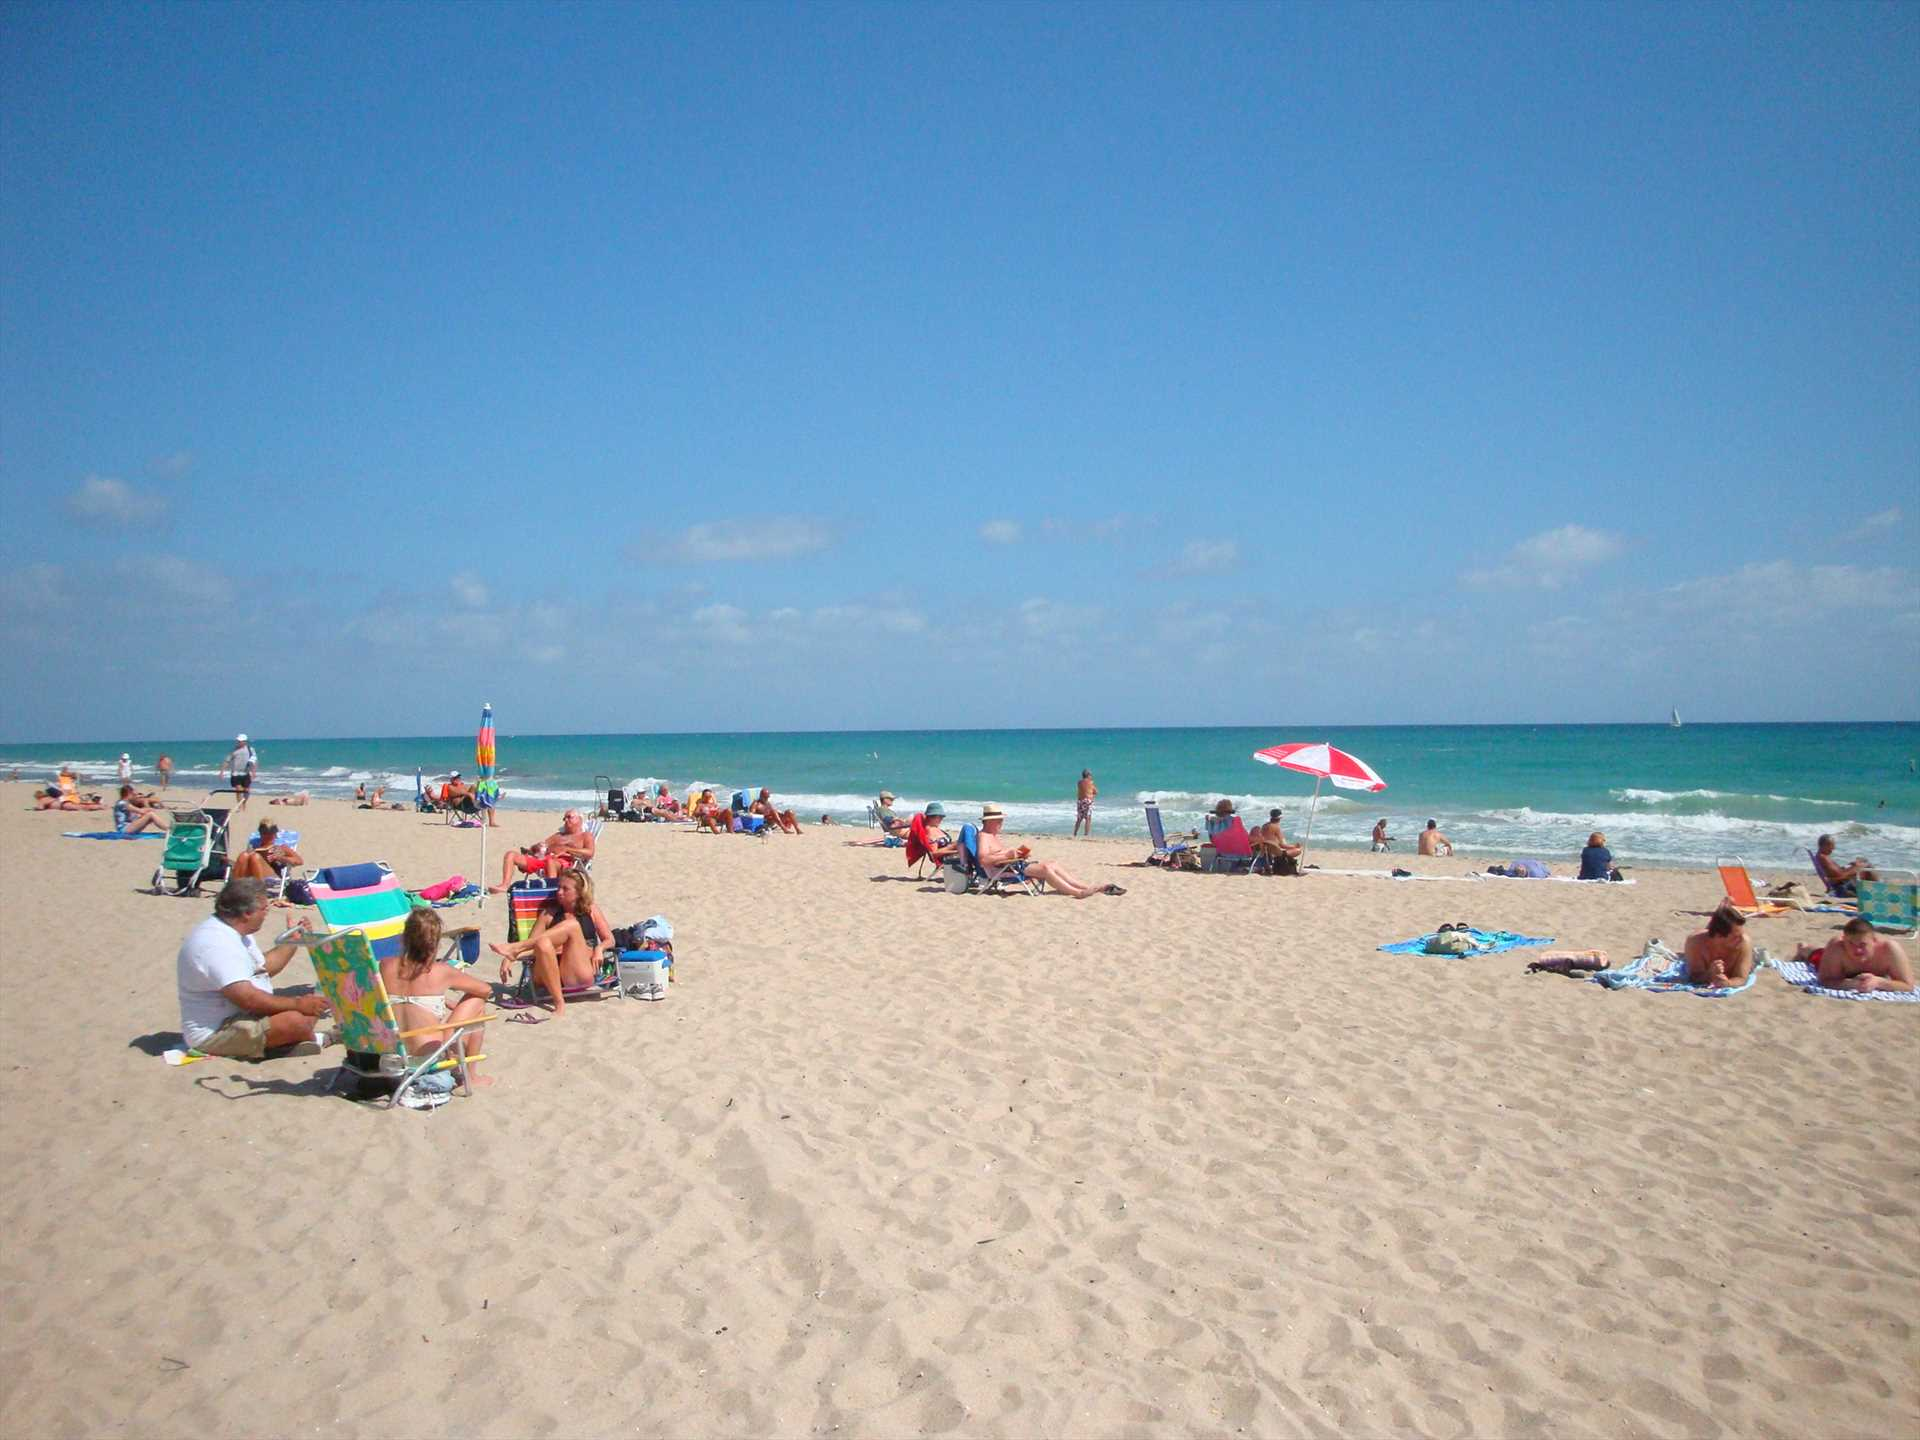 The wide uncrowded beach is one of South Florida's best.